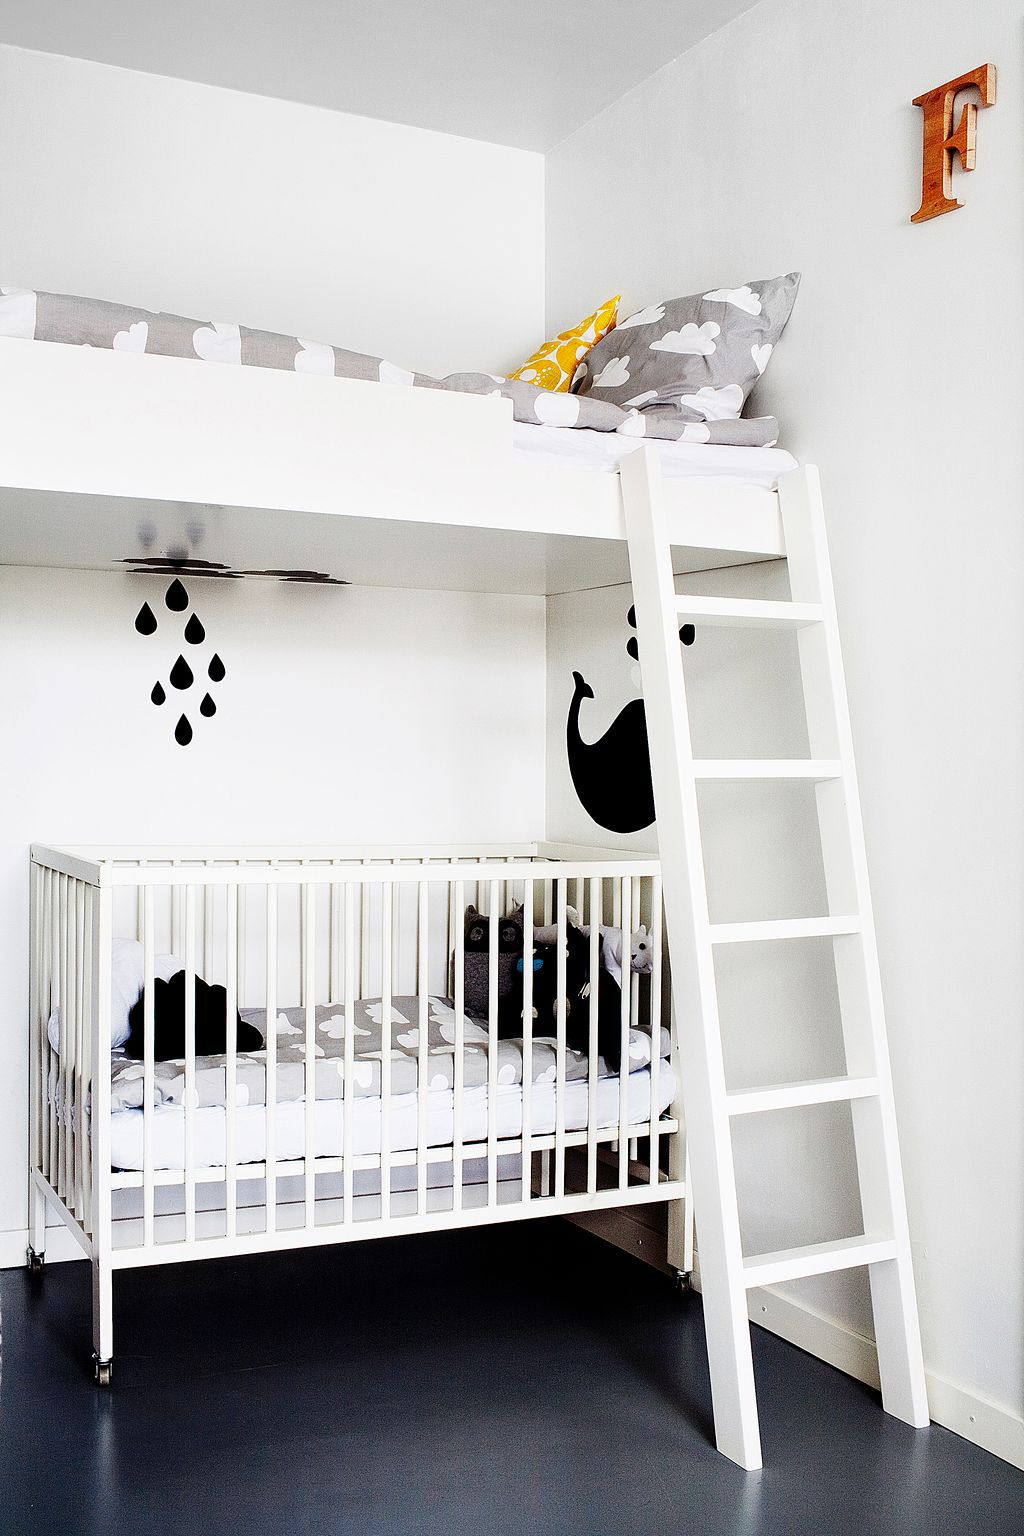 Cot Under High Sleeper Shared Kids Room Kids Rooms Shared Kid